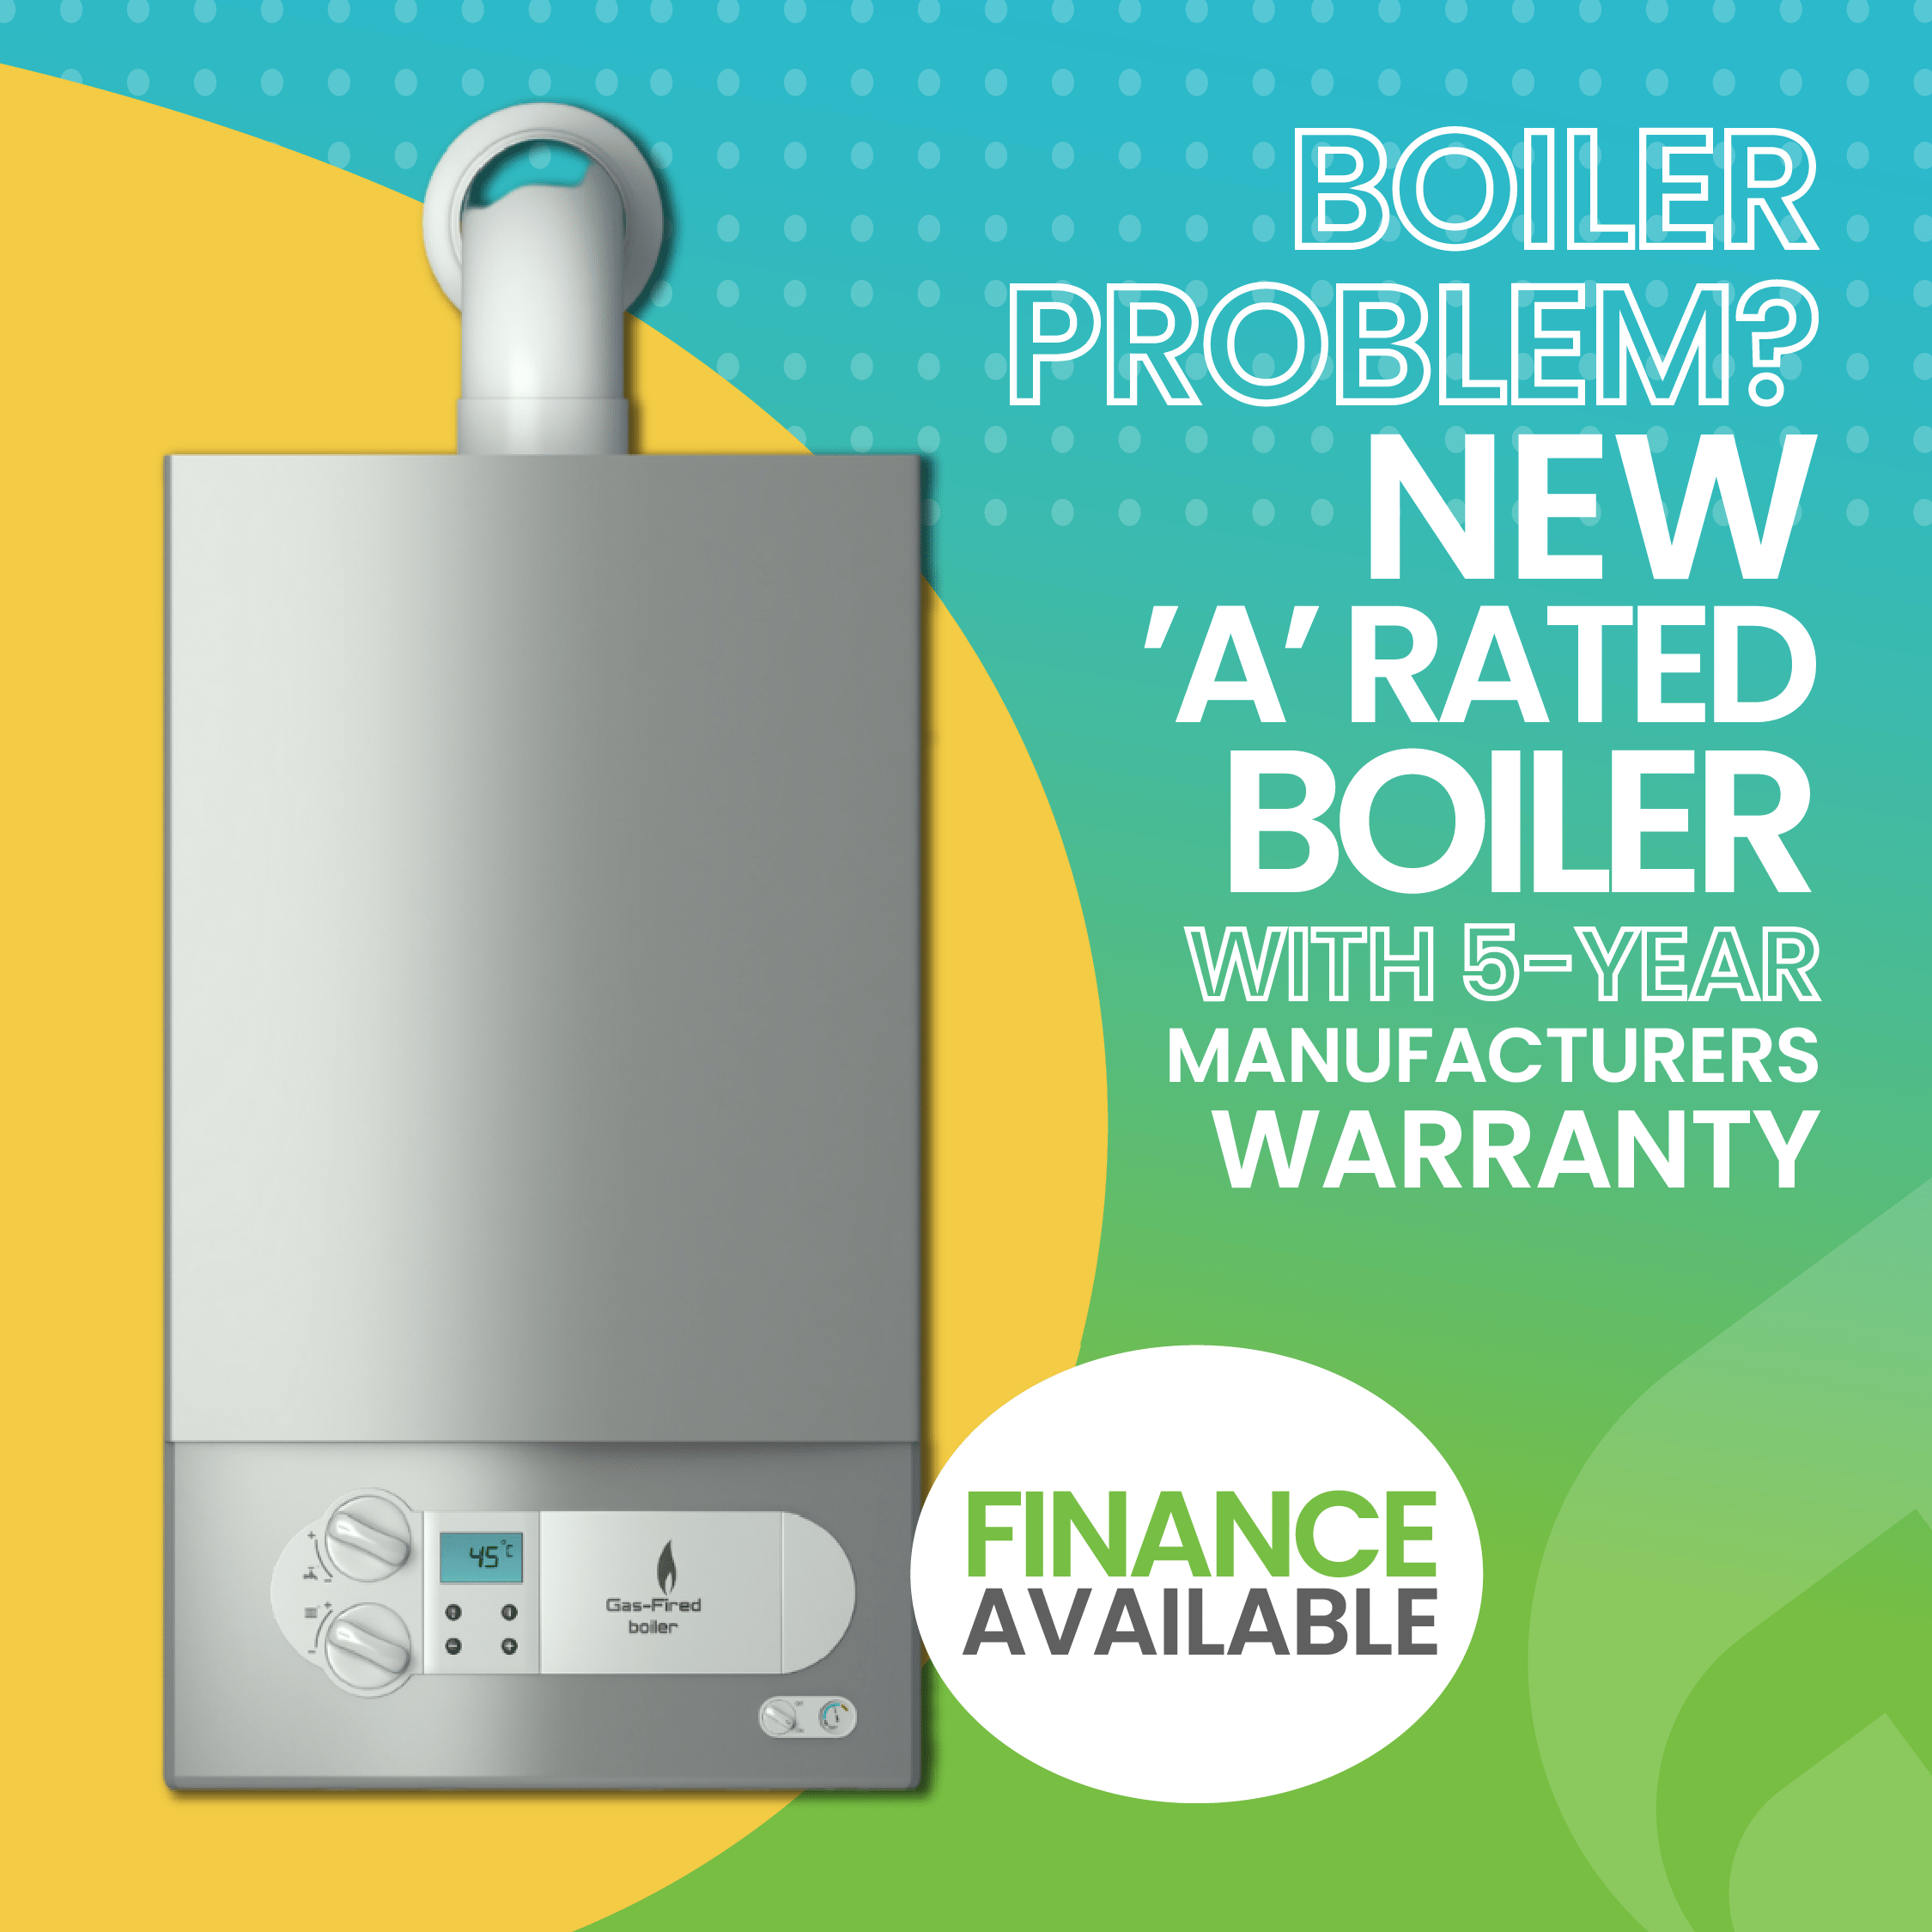 New Boiler installations Burnley Blackburn Preston Clitheroe Lancashire Finance Available